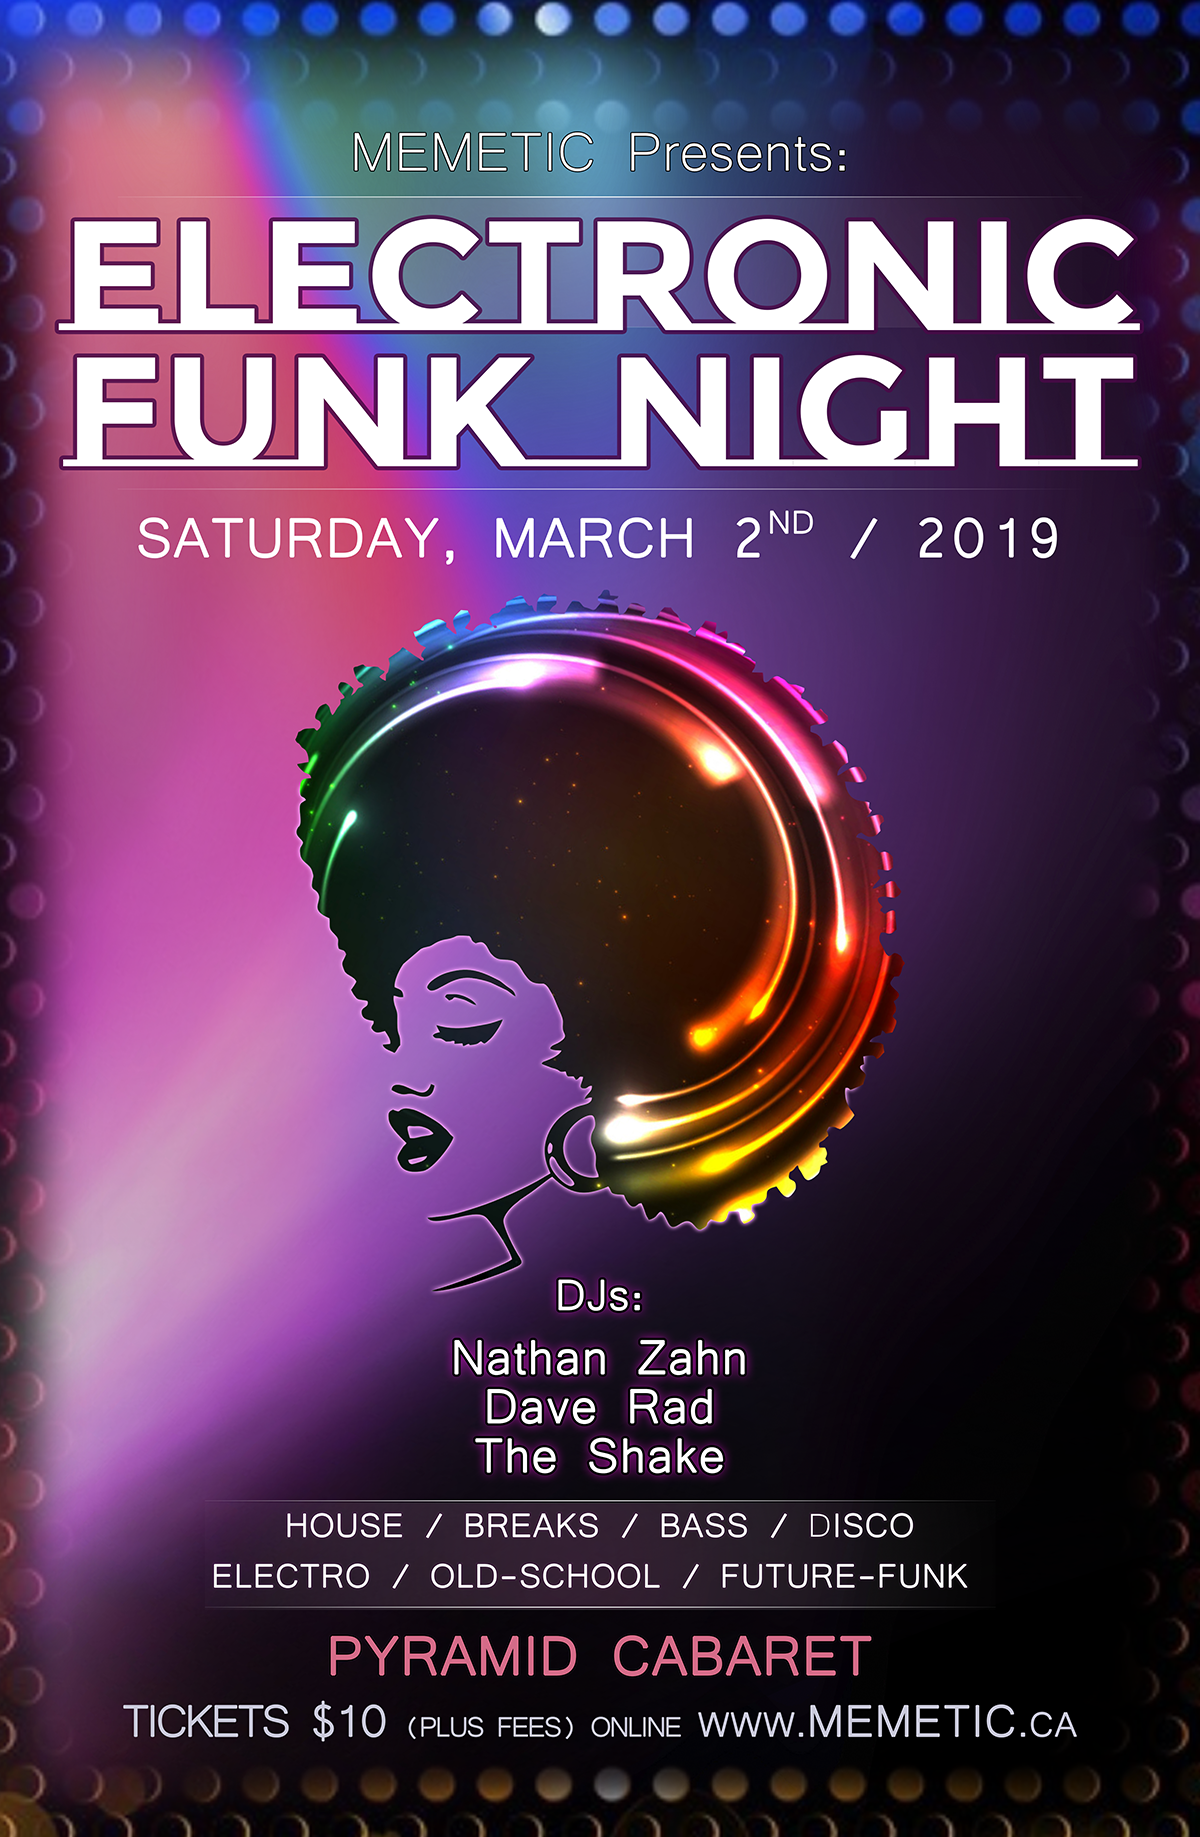 Electronic FUNK Night - MAR. 2 - The PYRAMID 00176